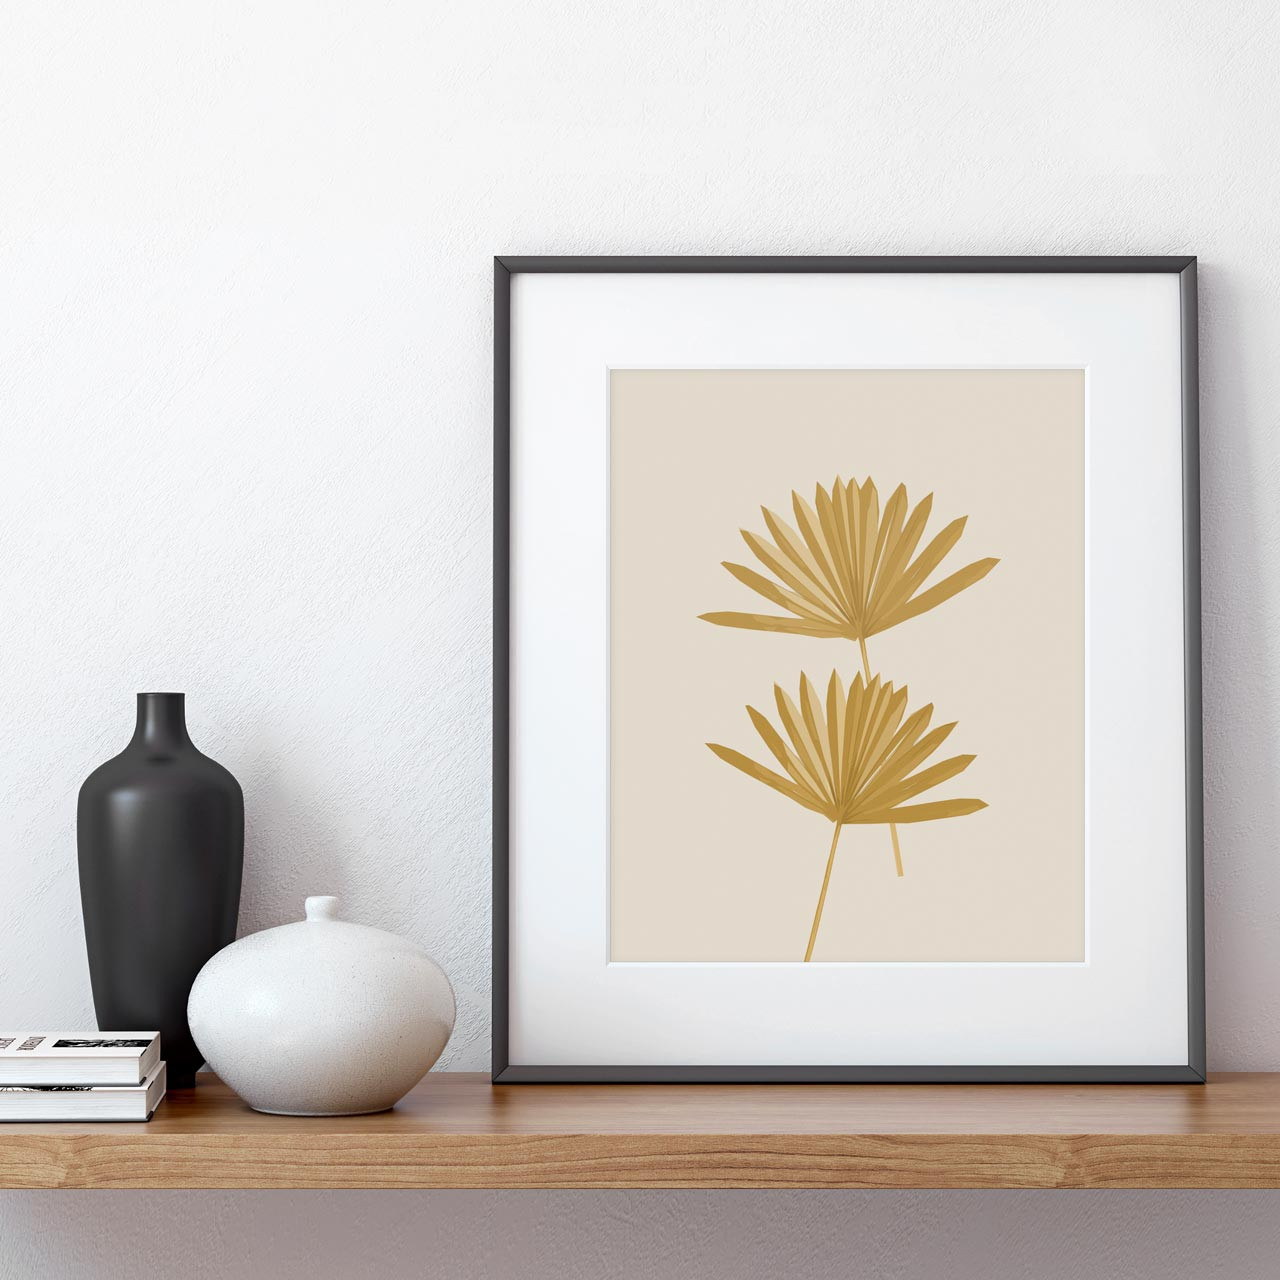 'Sun Palm II' in Ochre Abstract Leaf Art Print from The Printed Home